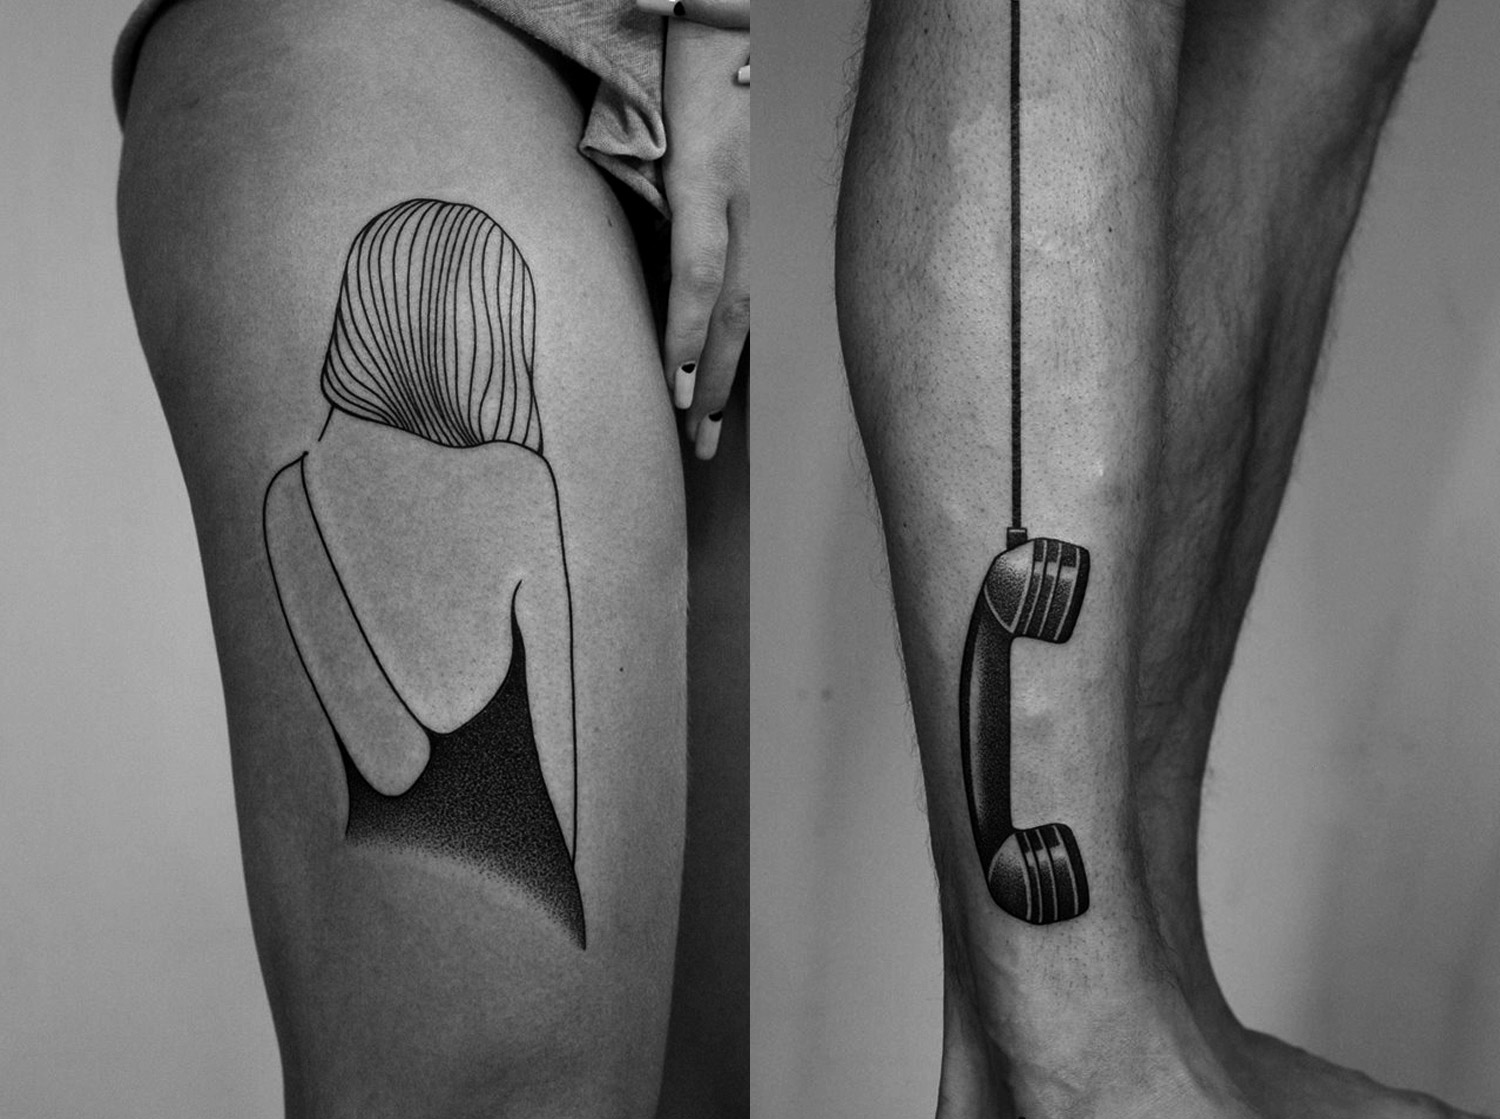 tattoos on legs by ilya brezinski